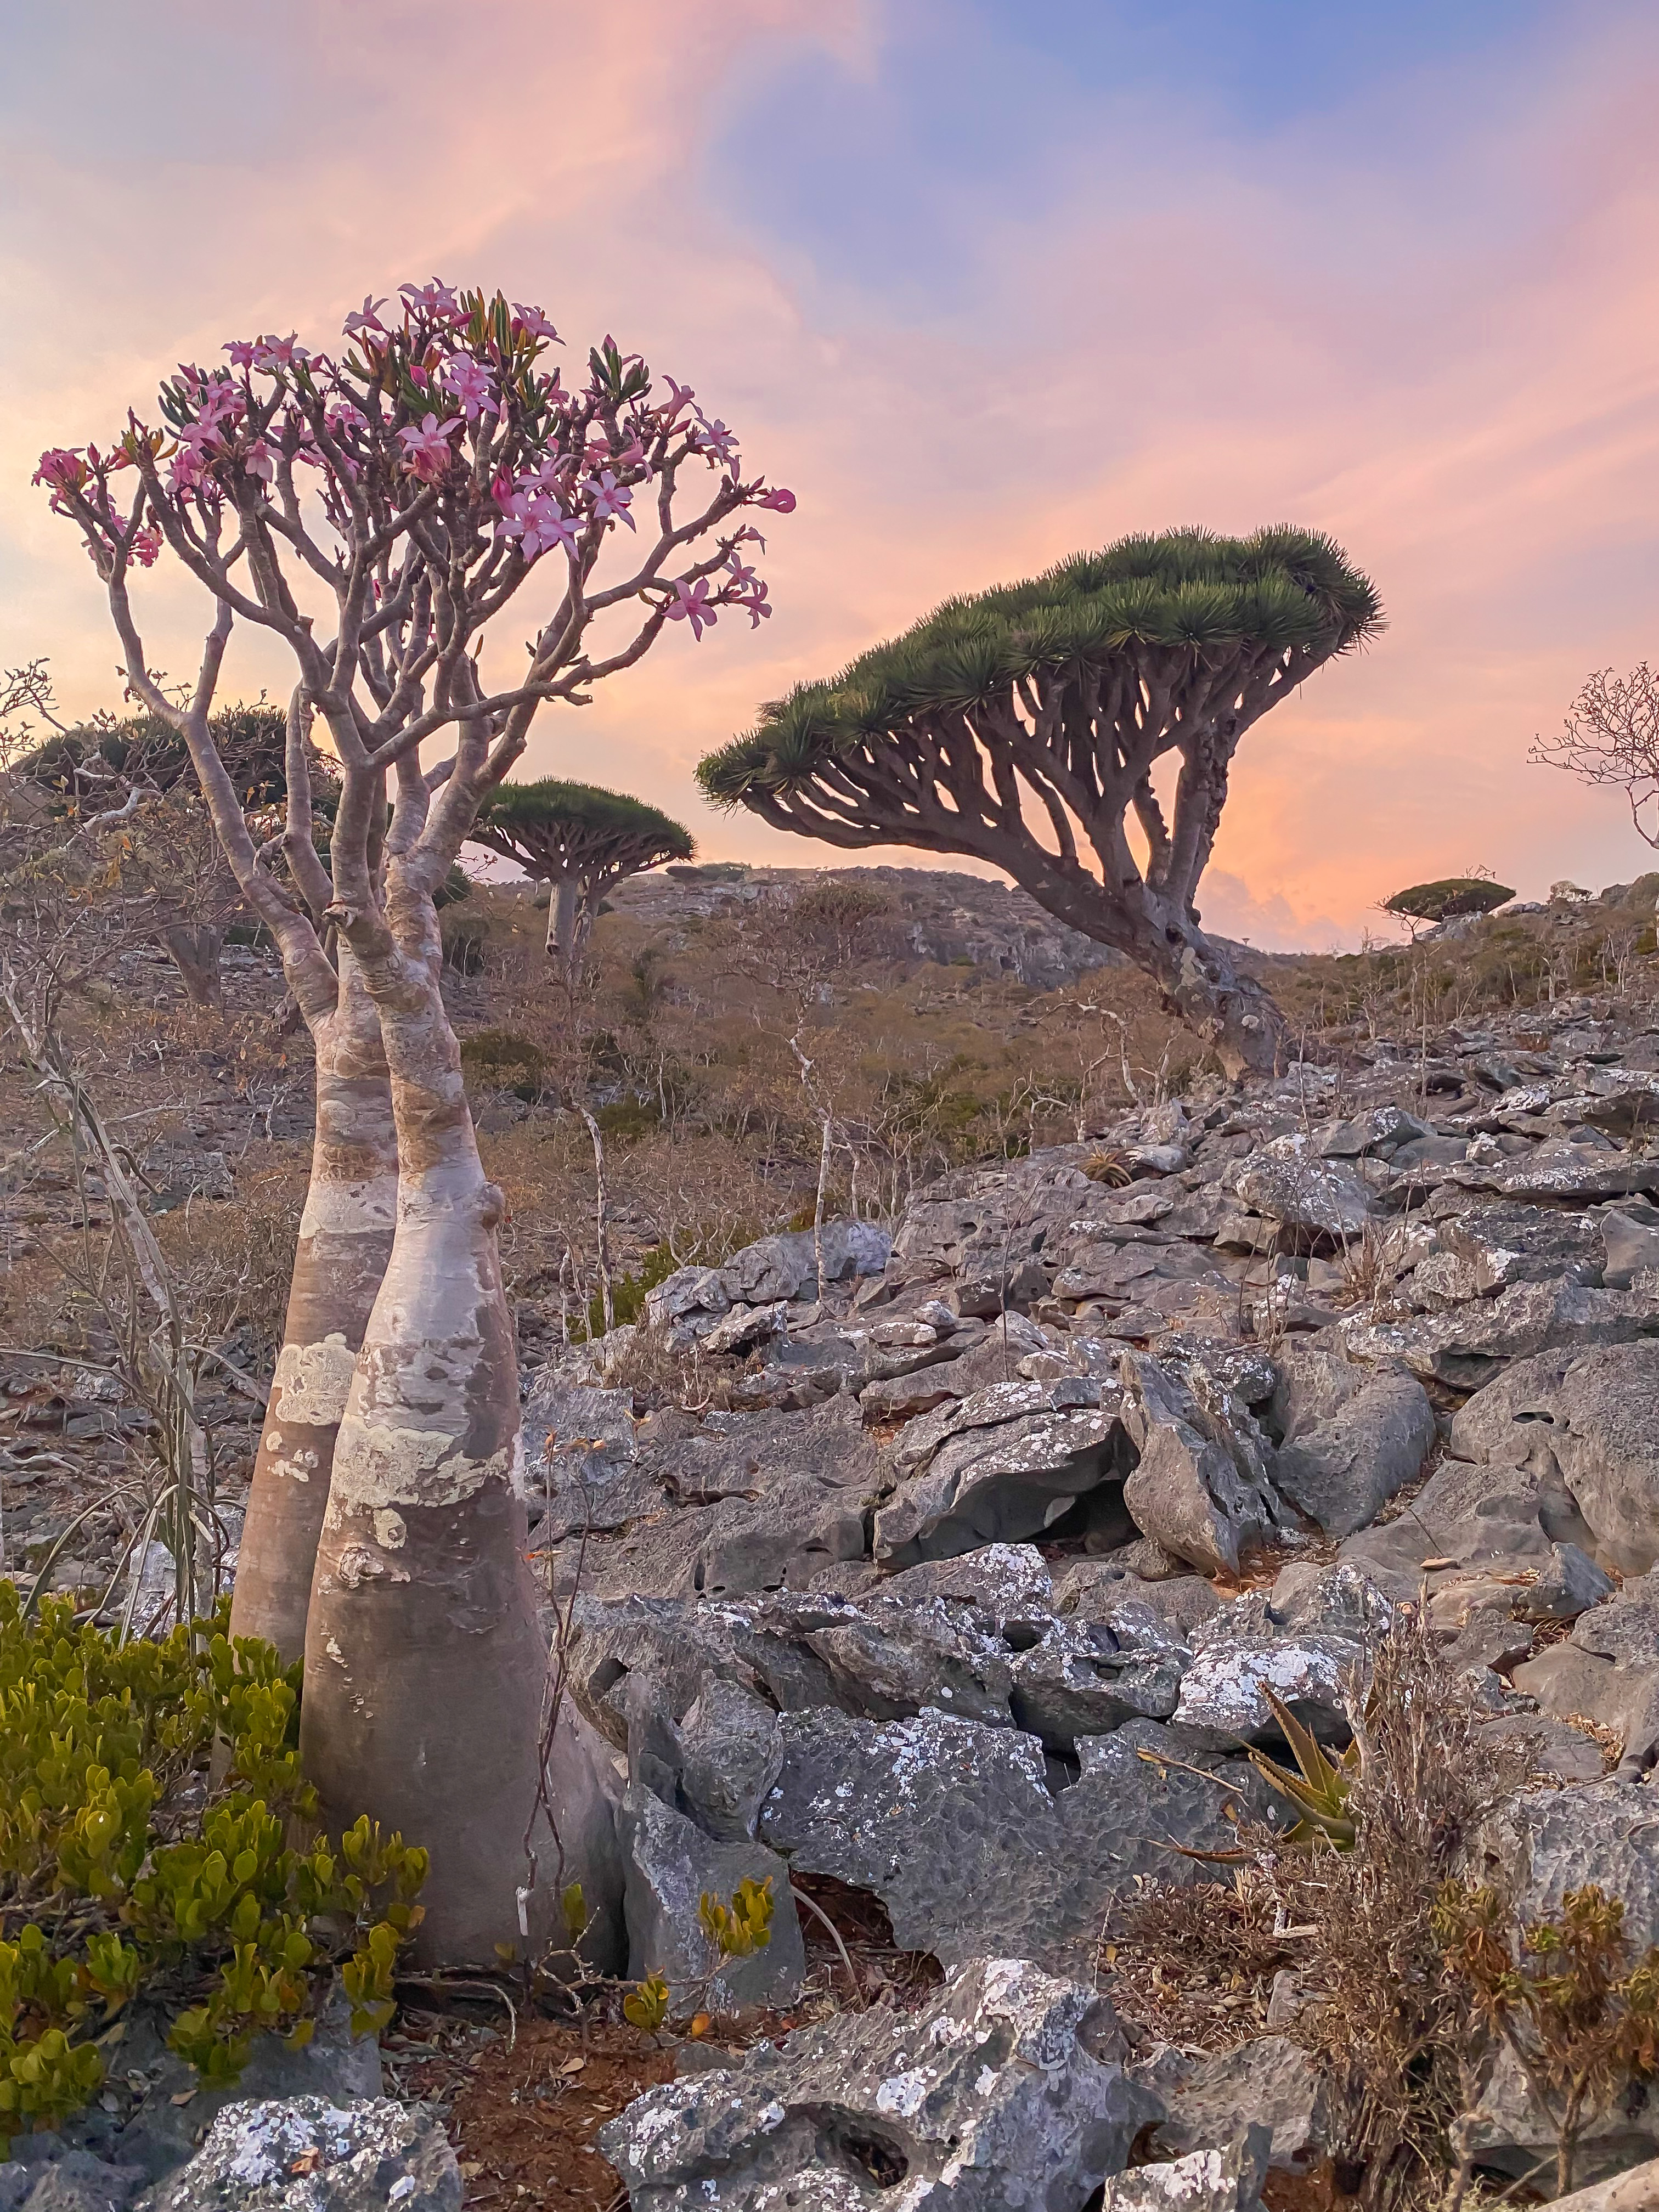 Explore Socotra - Travel to one of the most undiscovered places!